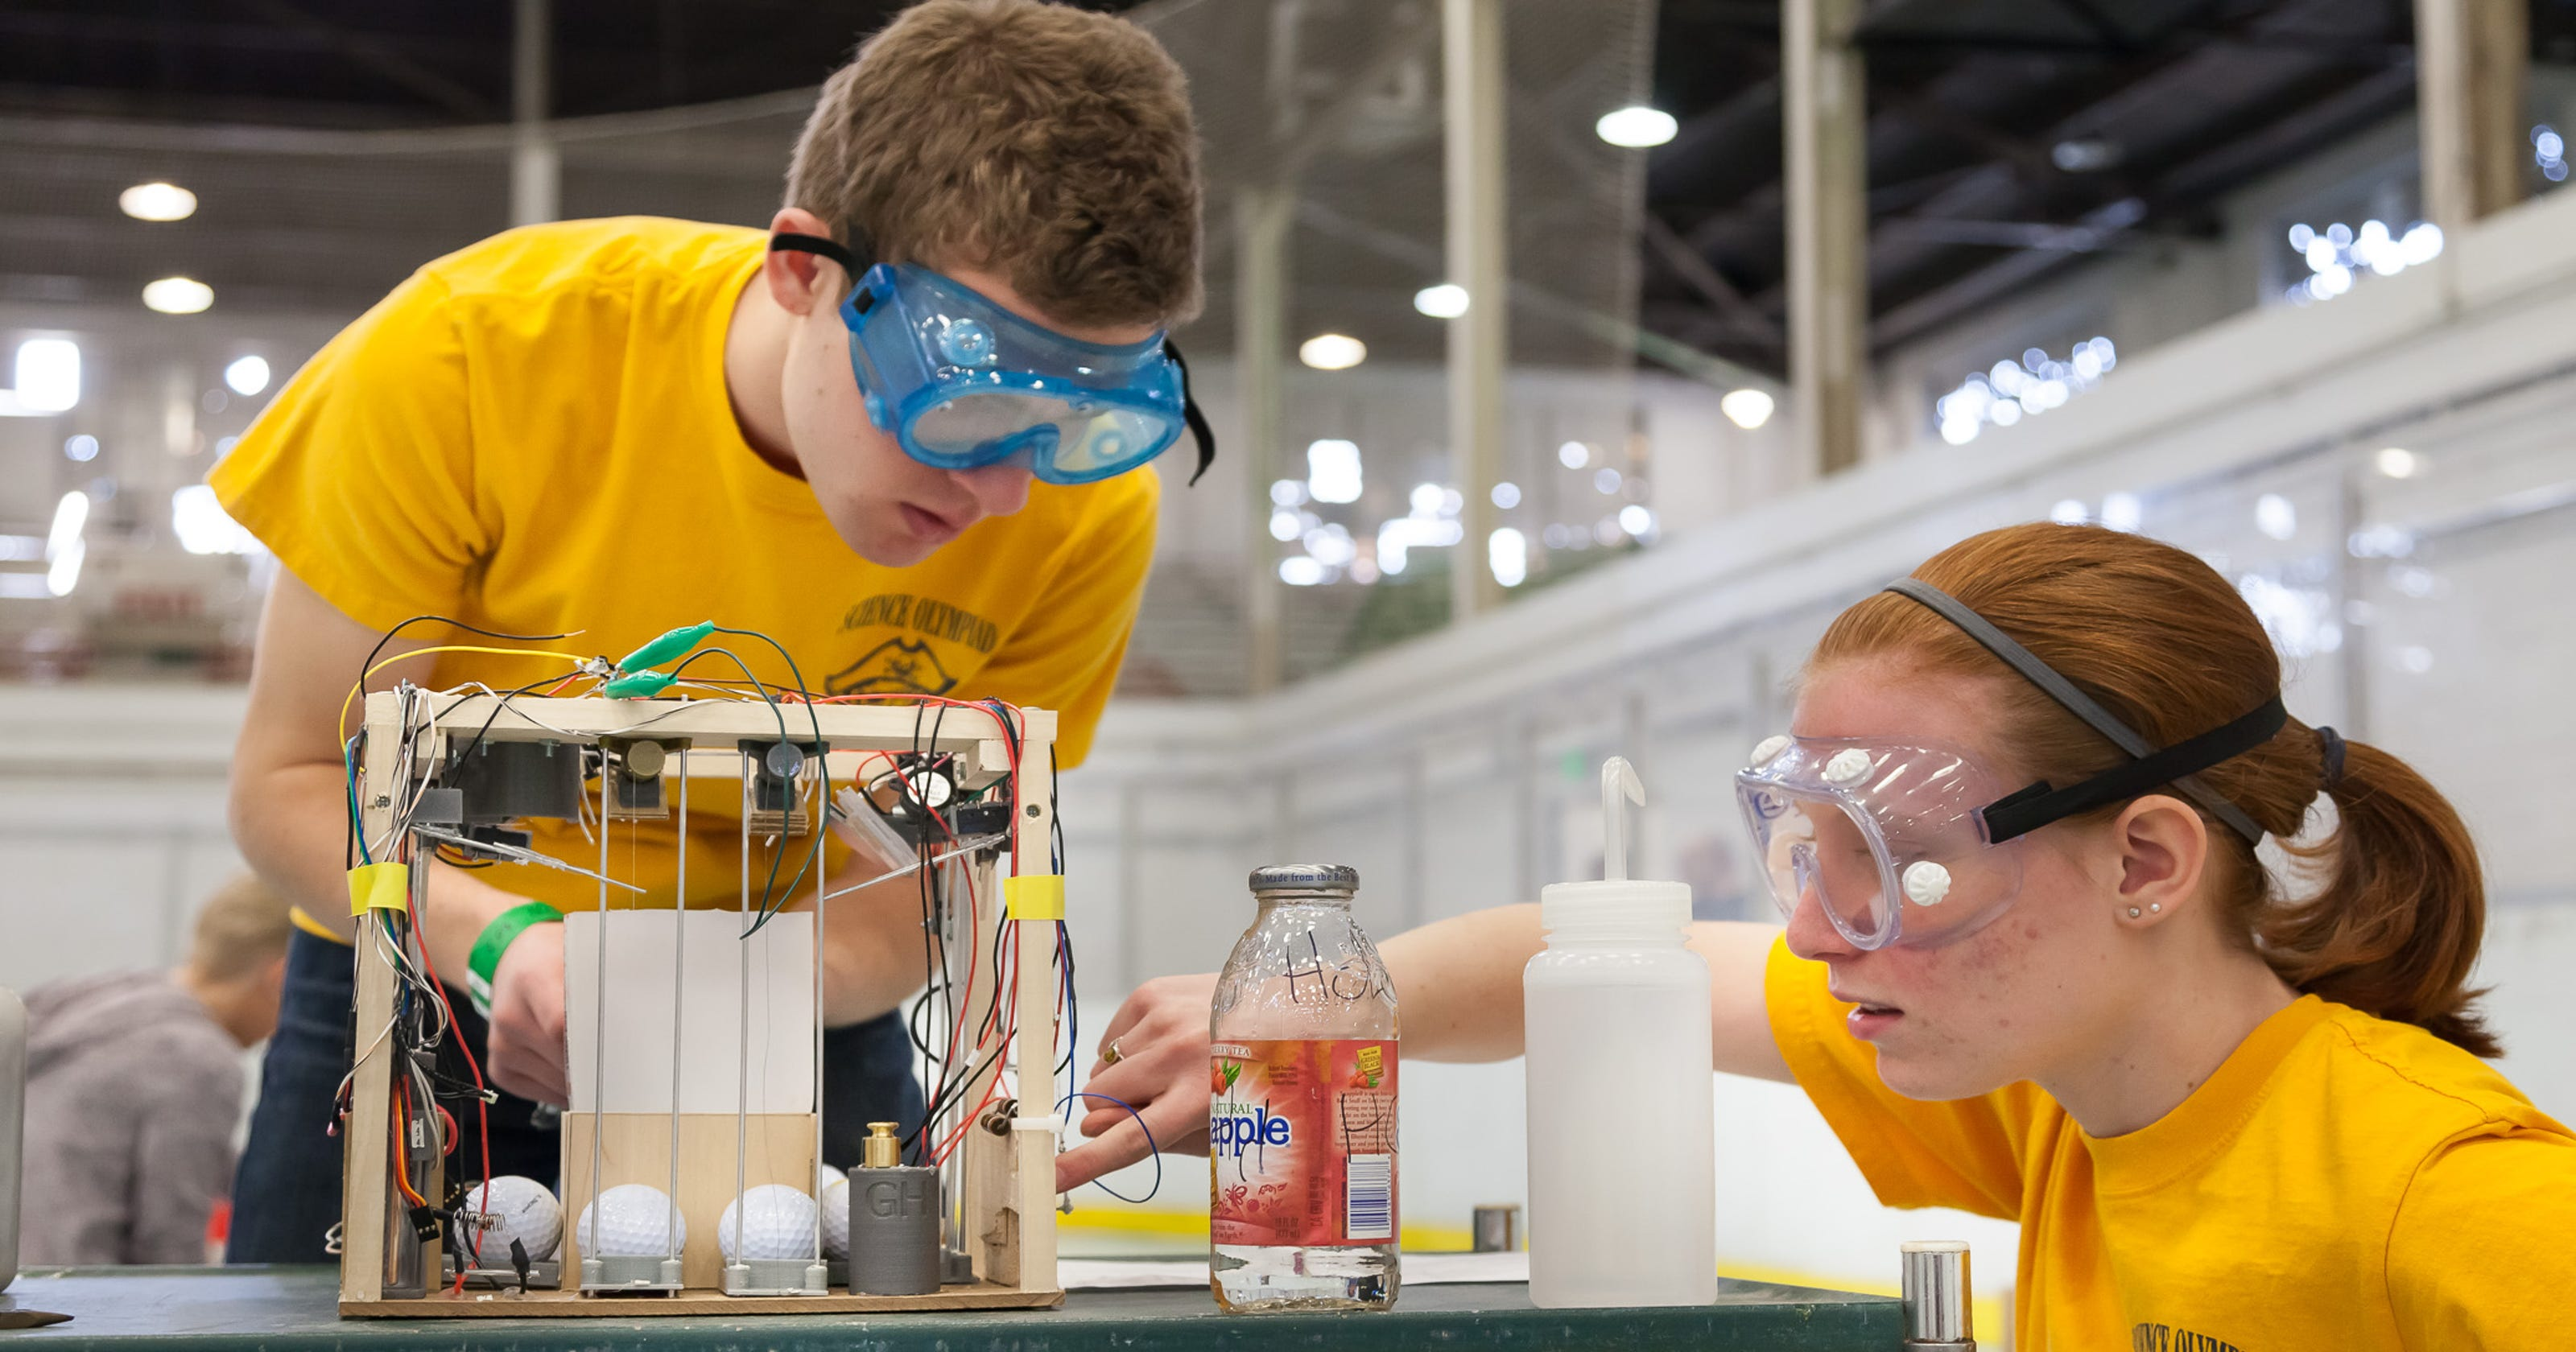 Local teams advance to State Science Olympiad